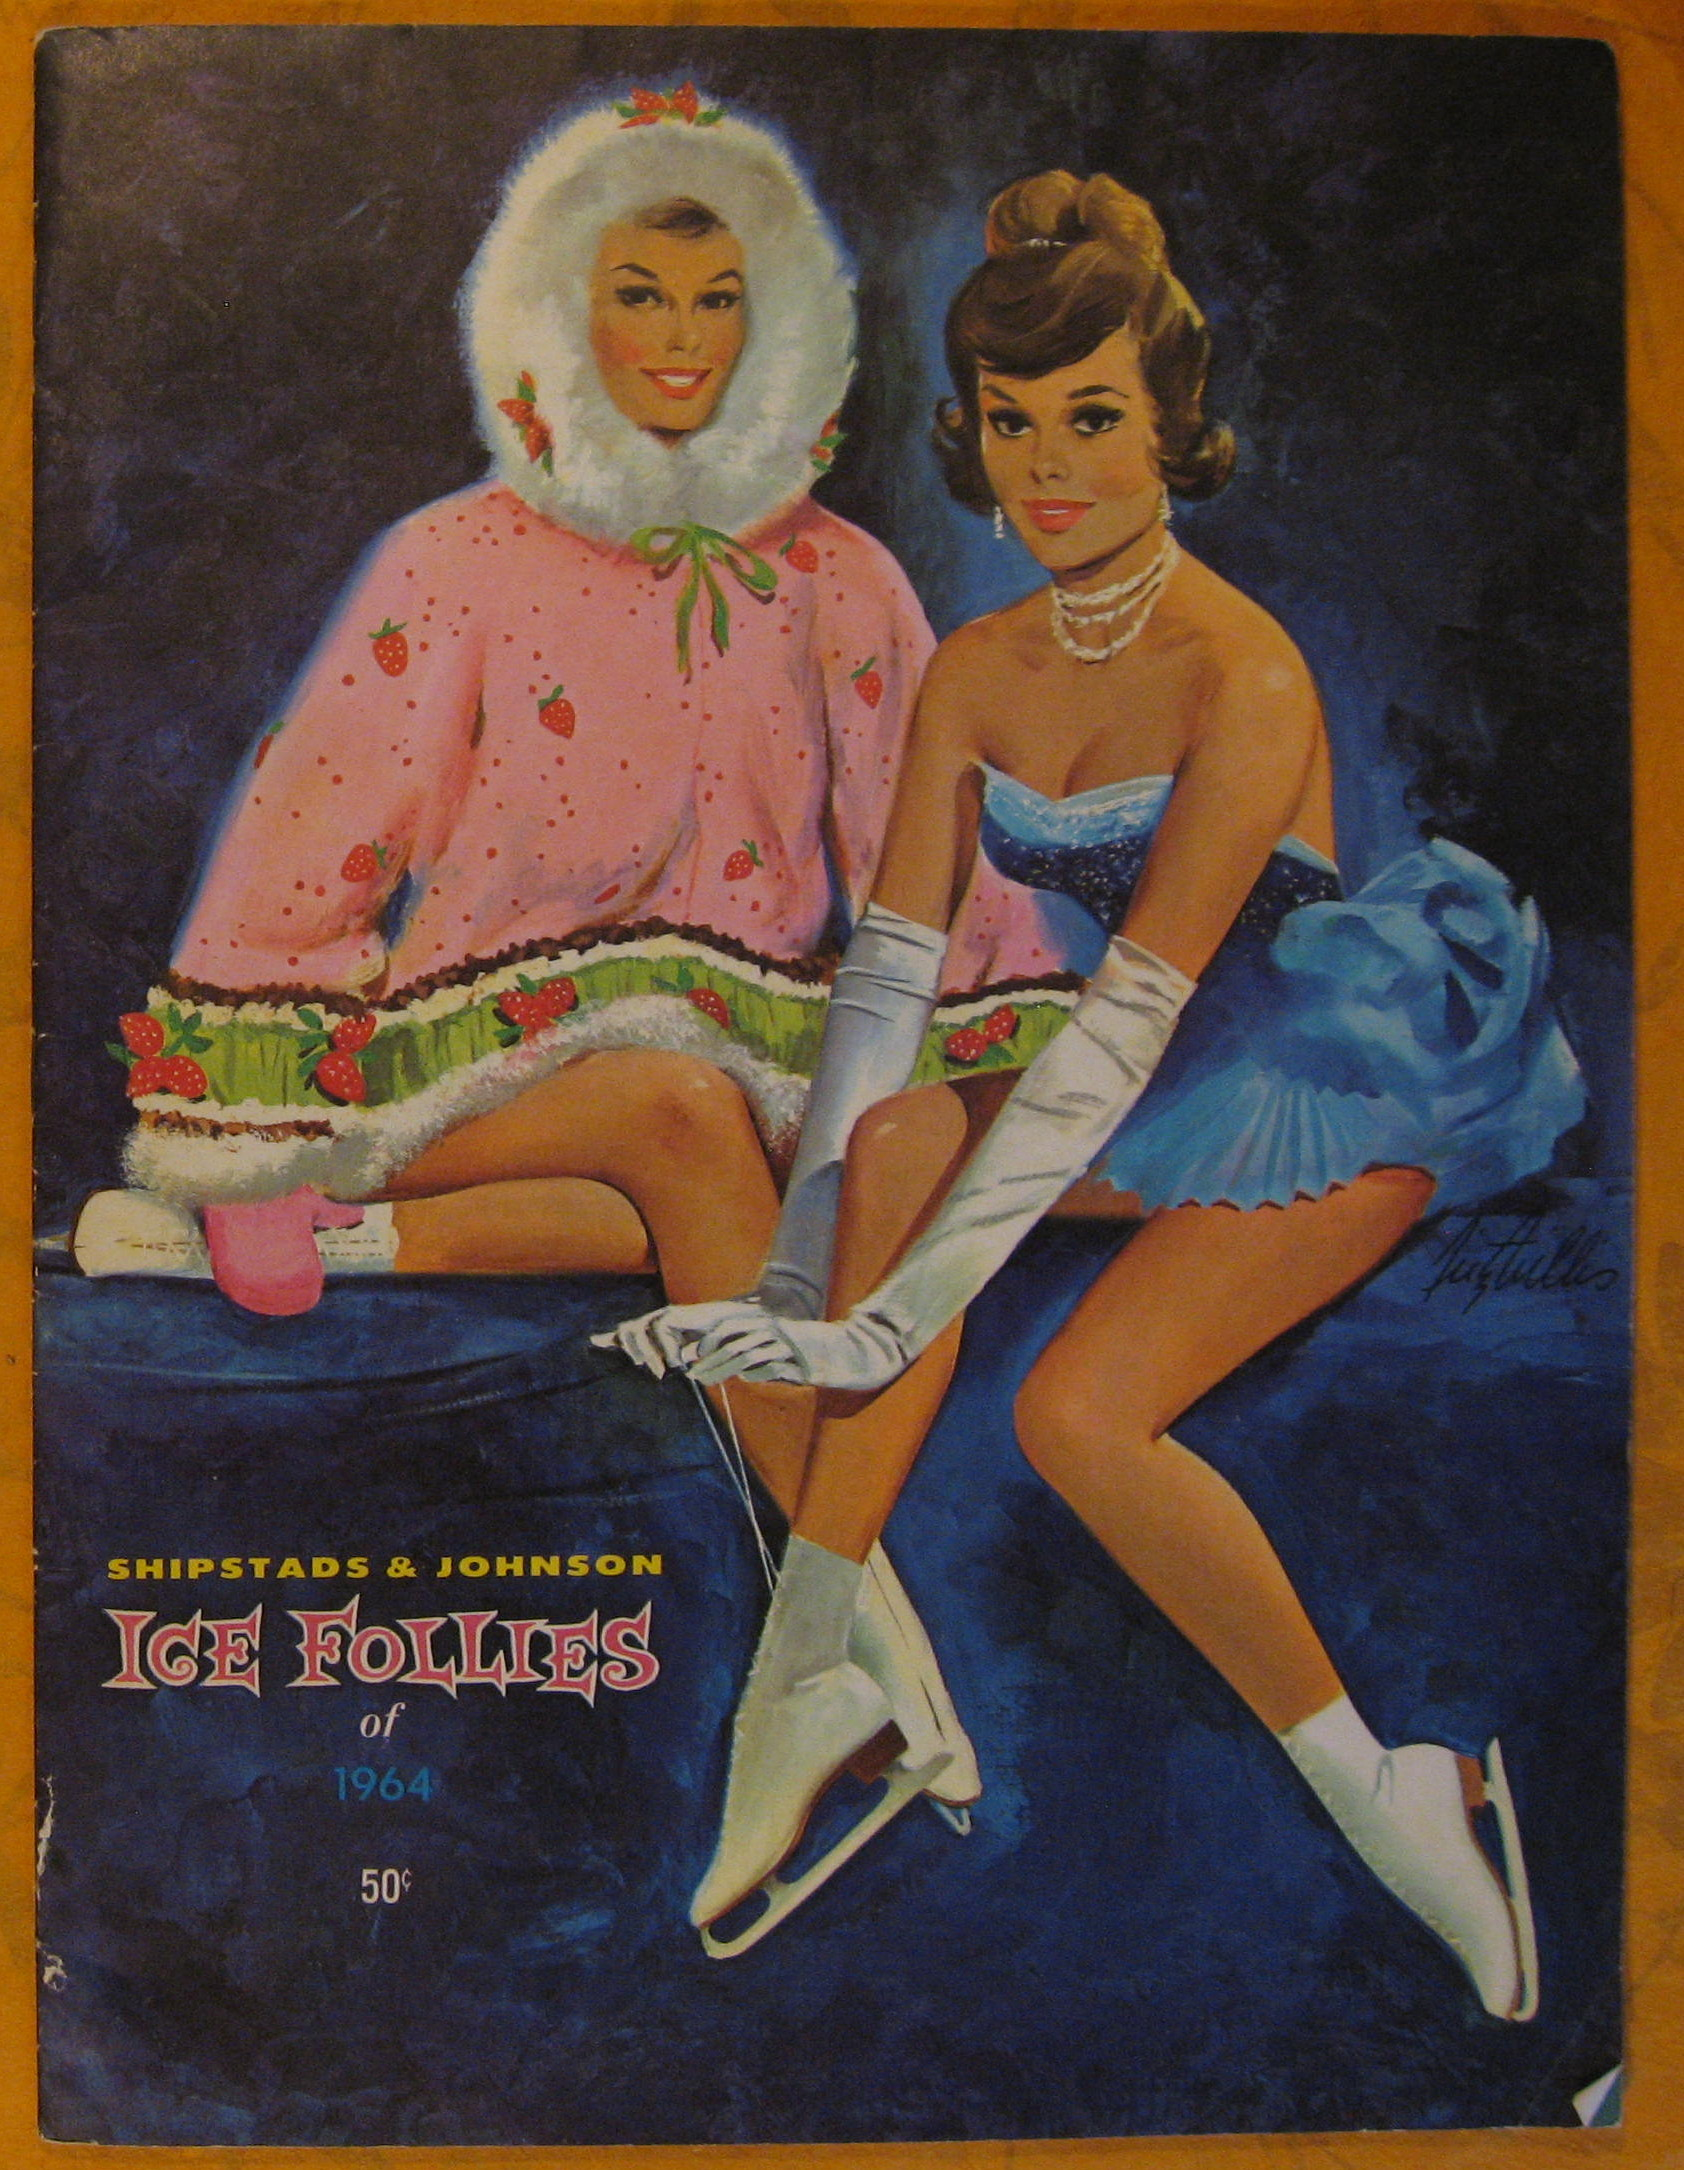 Image for Shipstads & Johnson Ice Follies of 1964